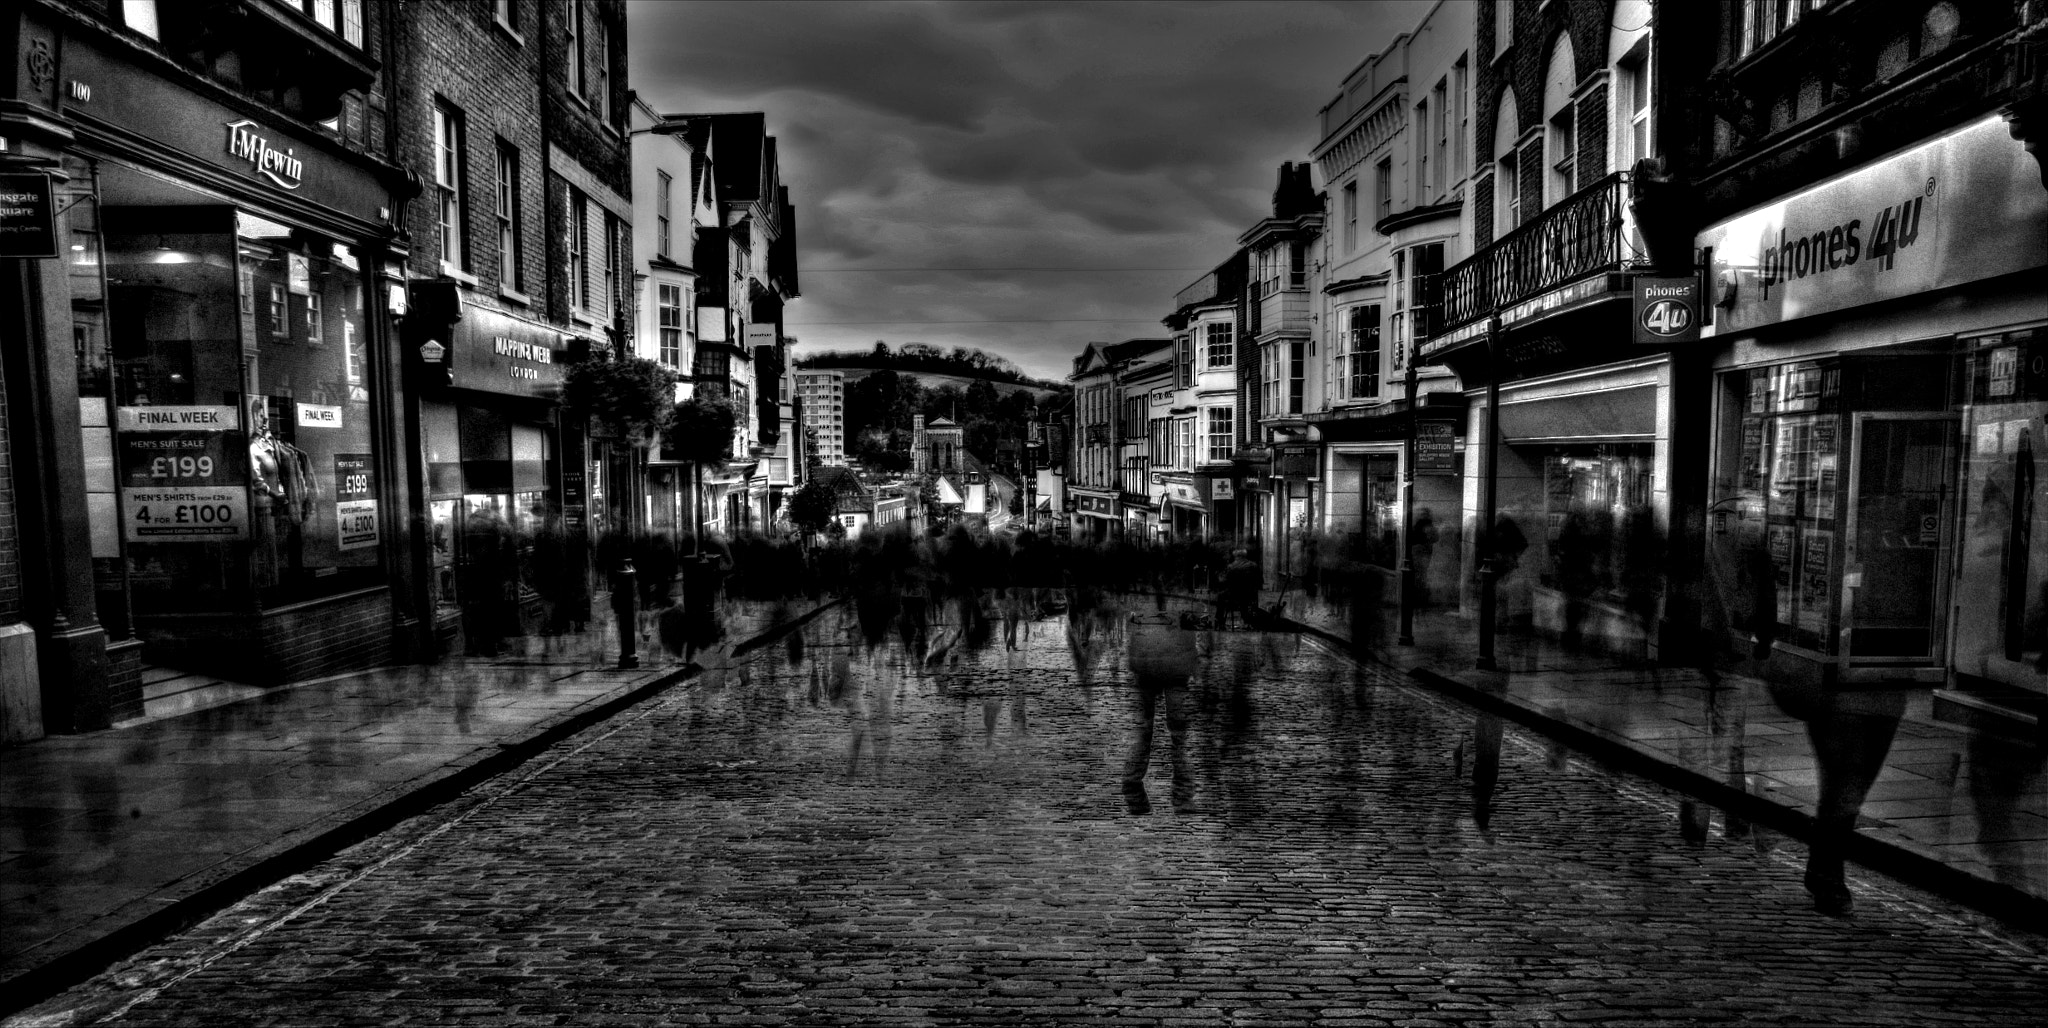 Photograph City of Ghosts by mark baker on 500px